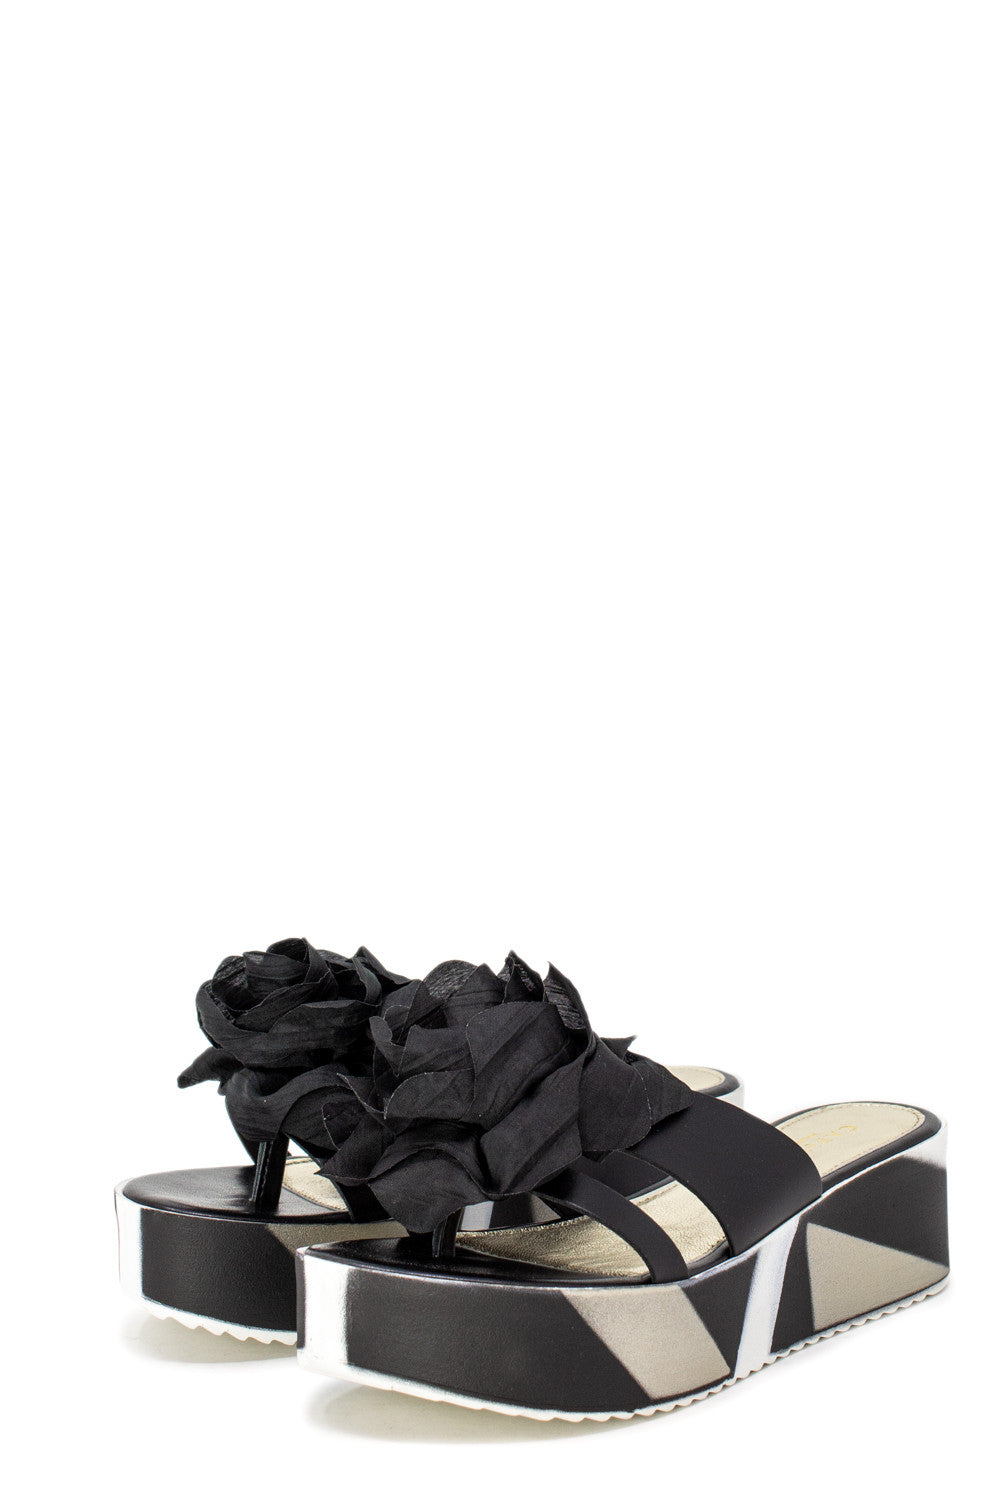 Caf Noir Woman Shoes